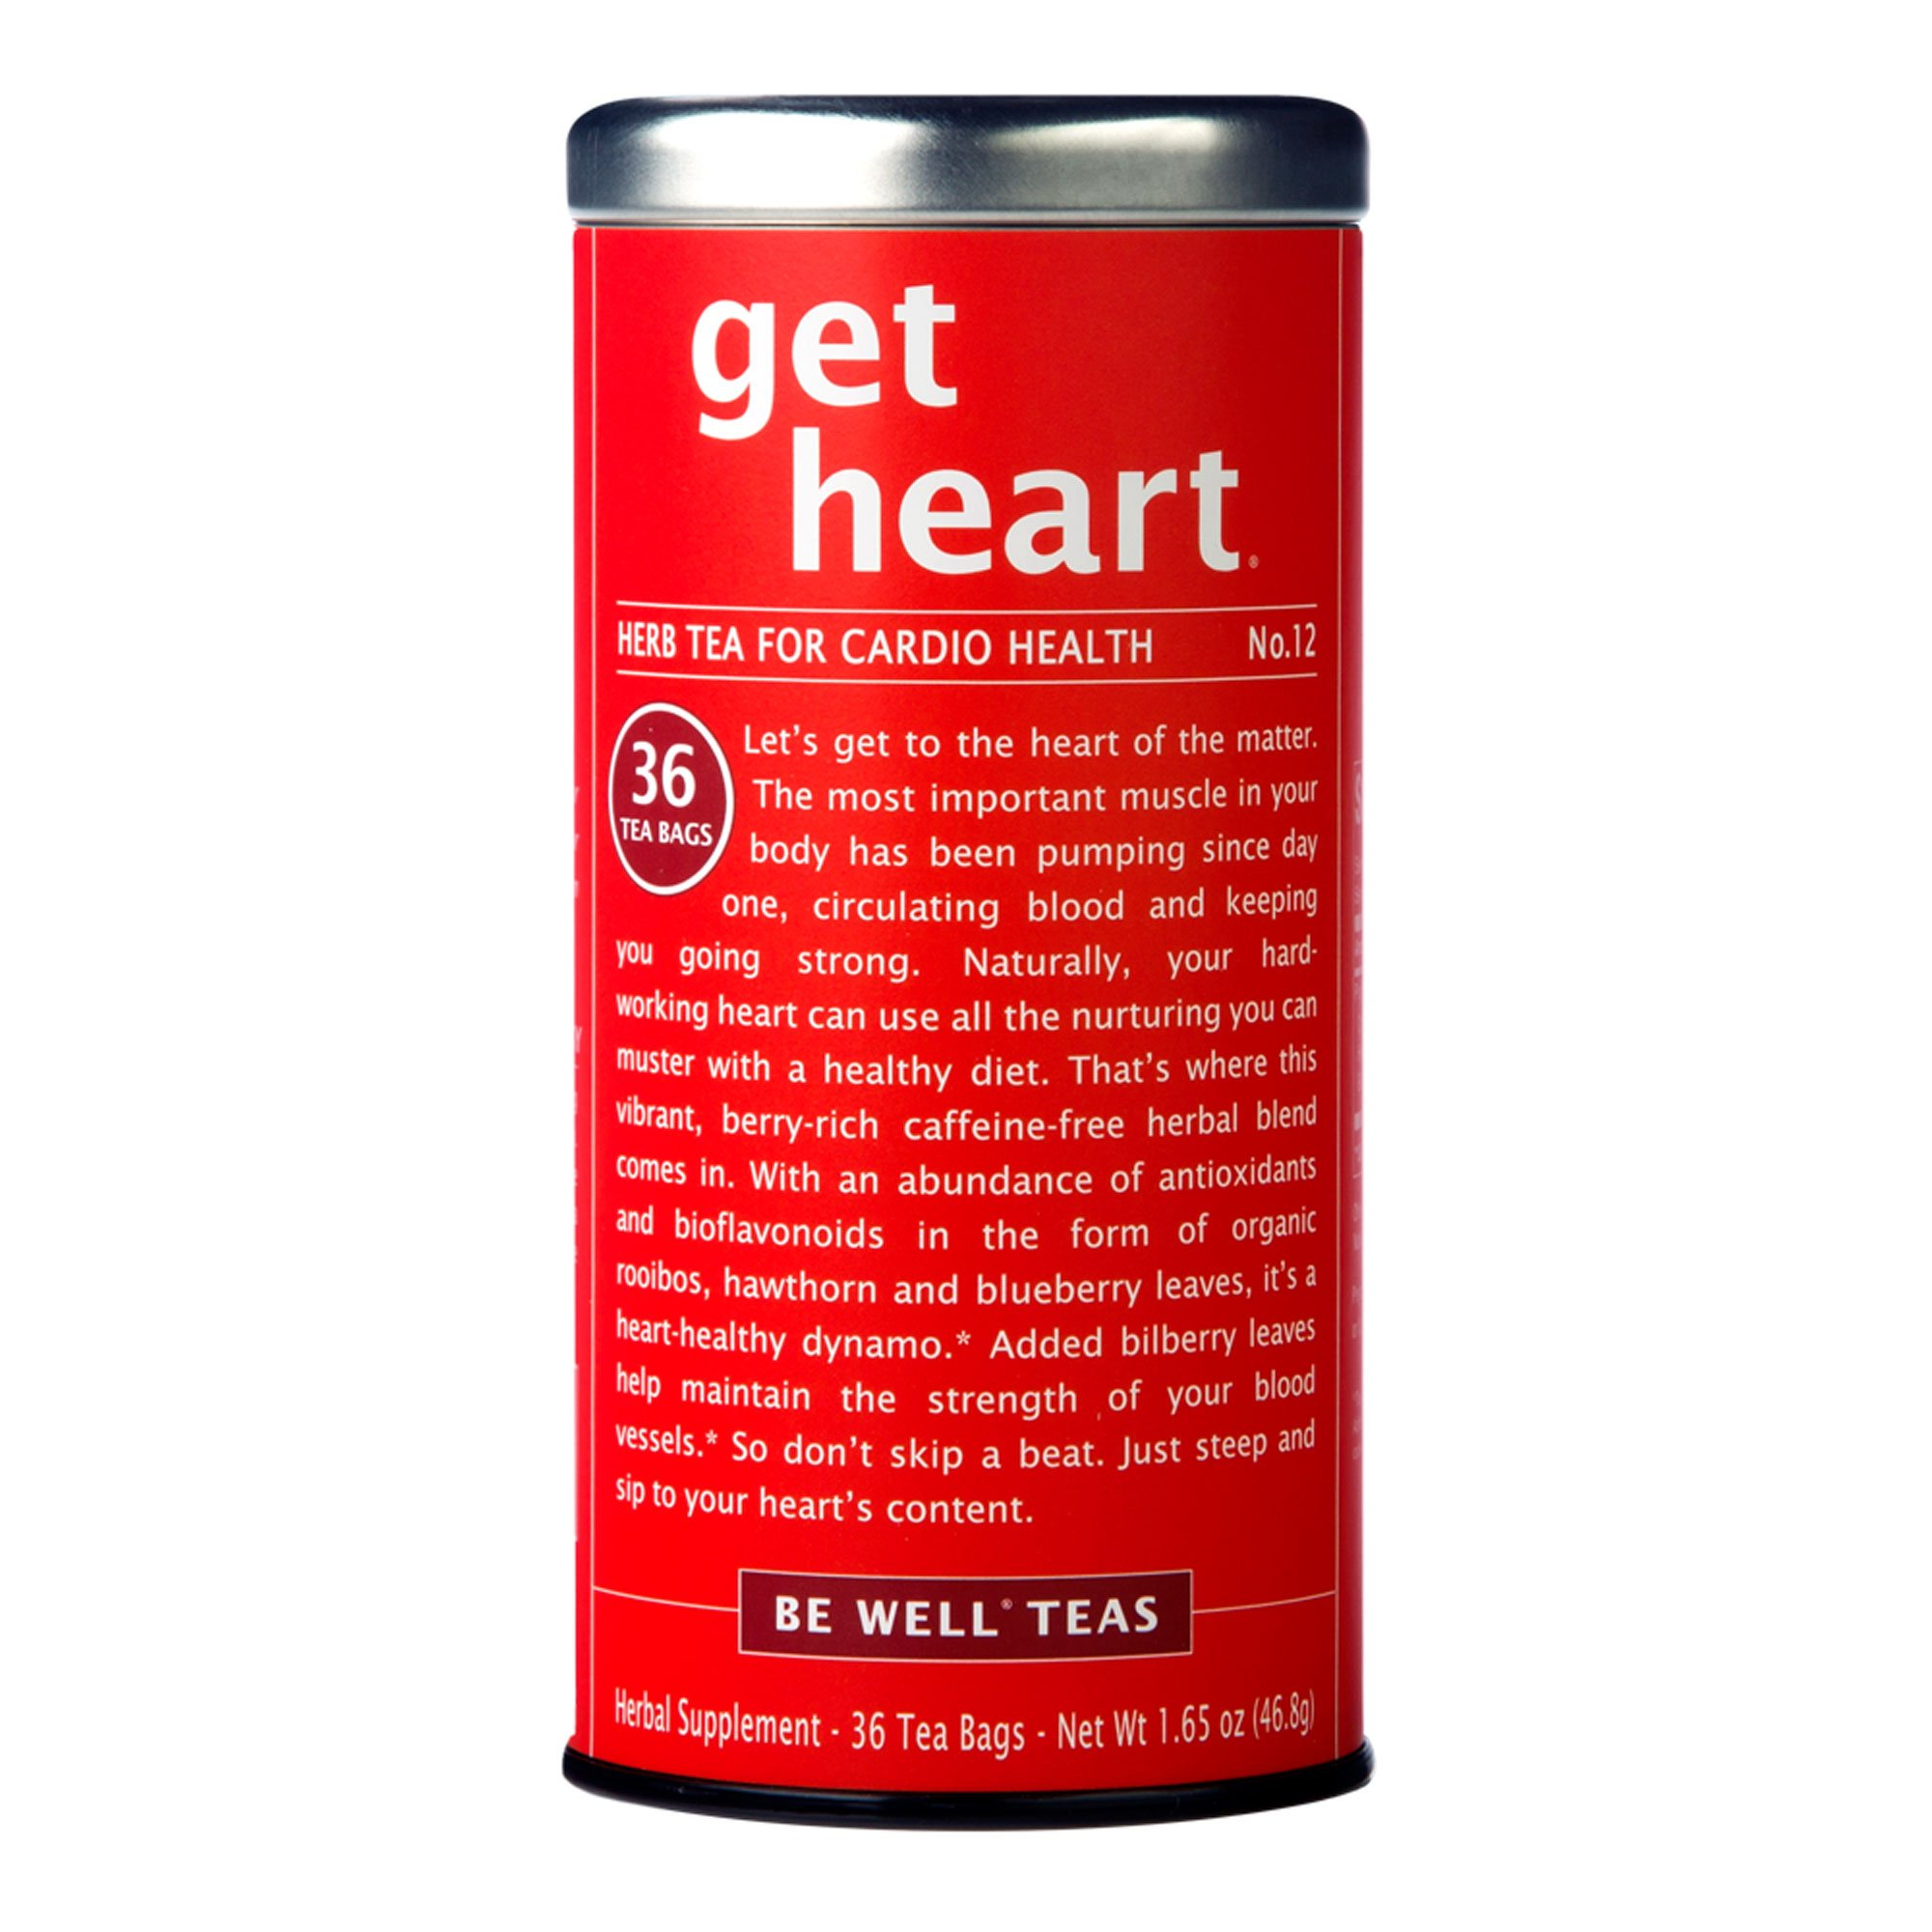 Republic Of Tea, Tea Be Well Rooibos Get Heart, 36 Count by The Republic of Tea